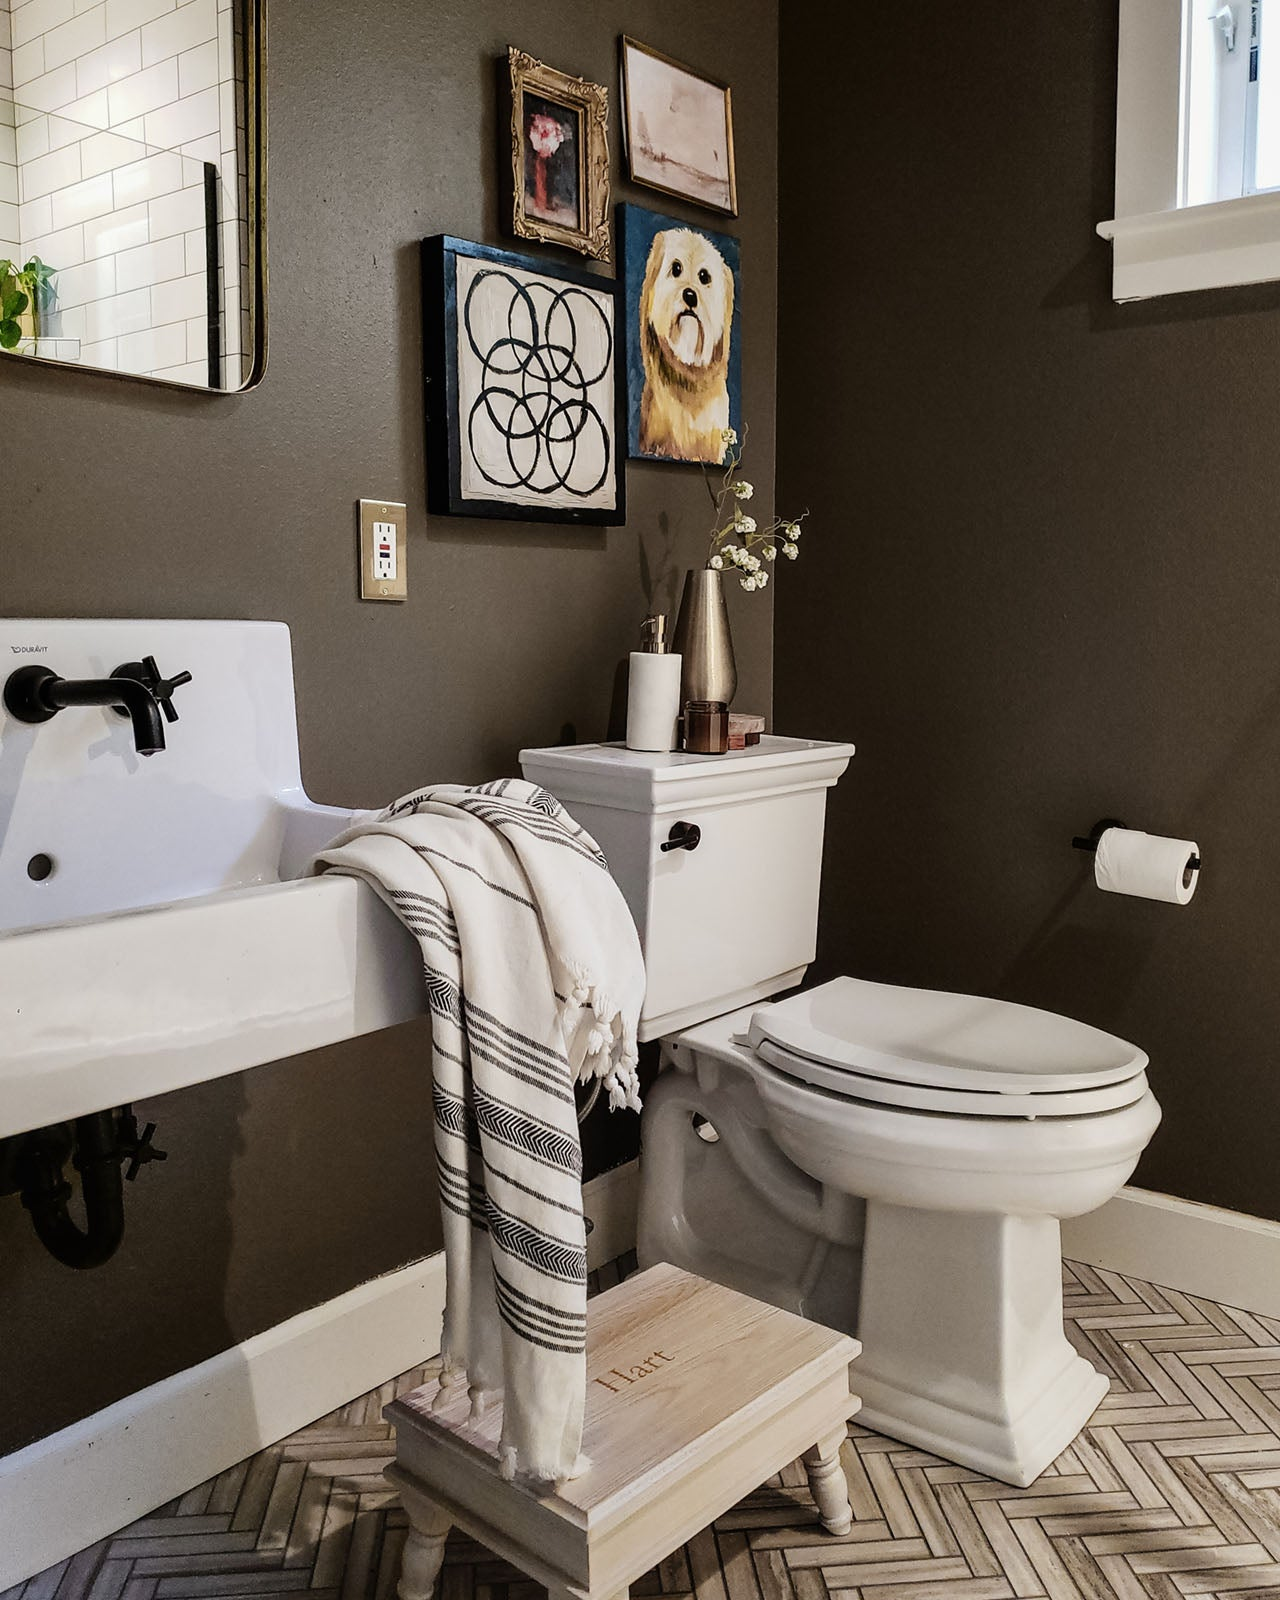 You don't have to break the bank to update your bathroom. From fresh paint to thrifted finds, we're sharing five bathroom decor ideas on a budget. Read now!